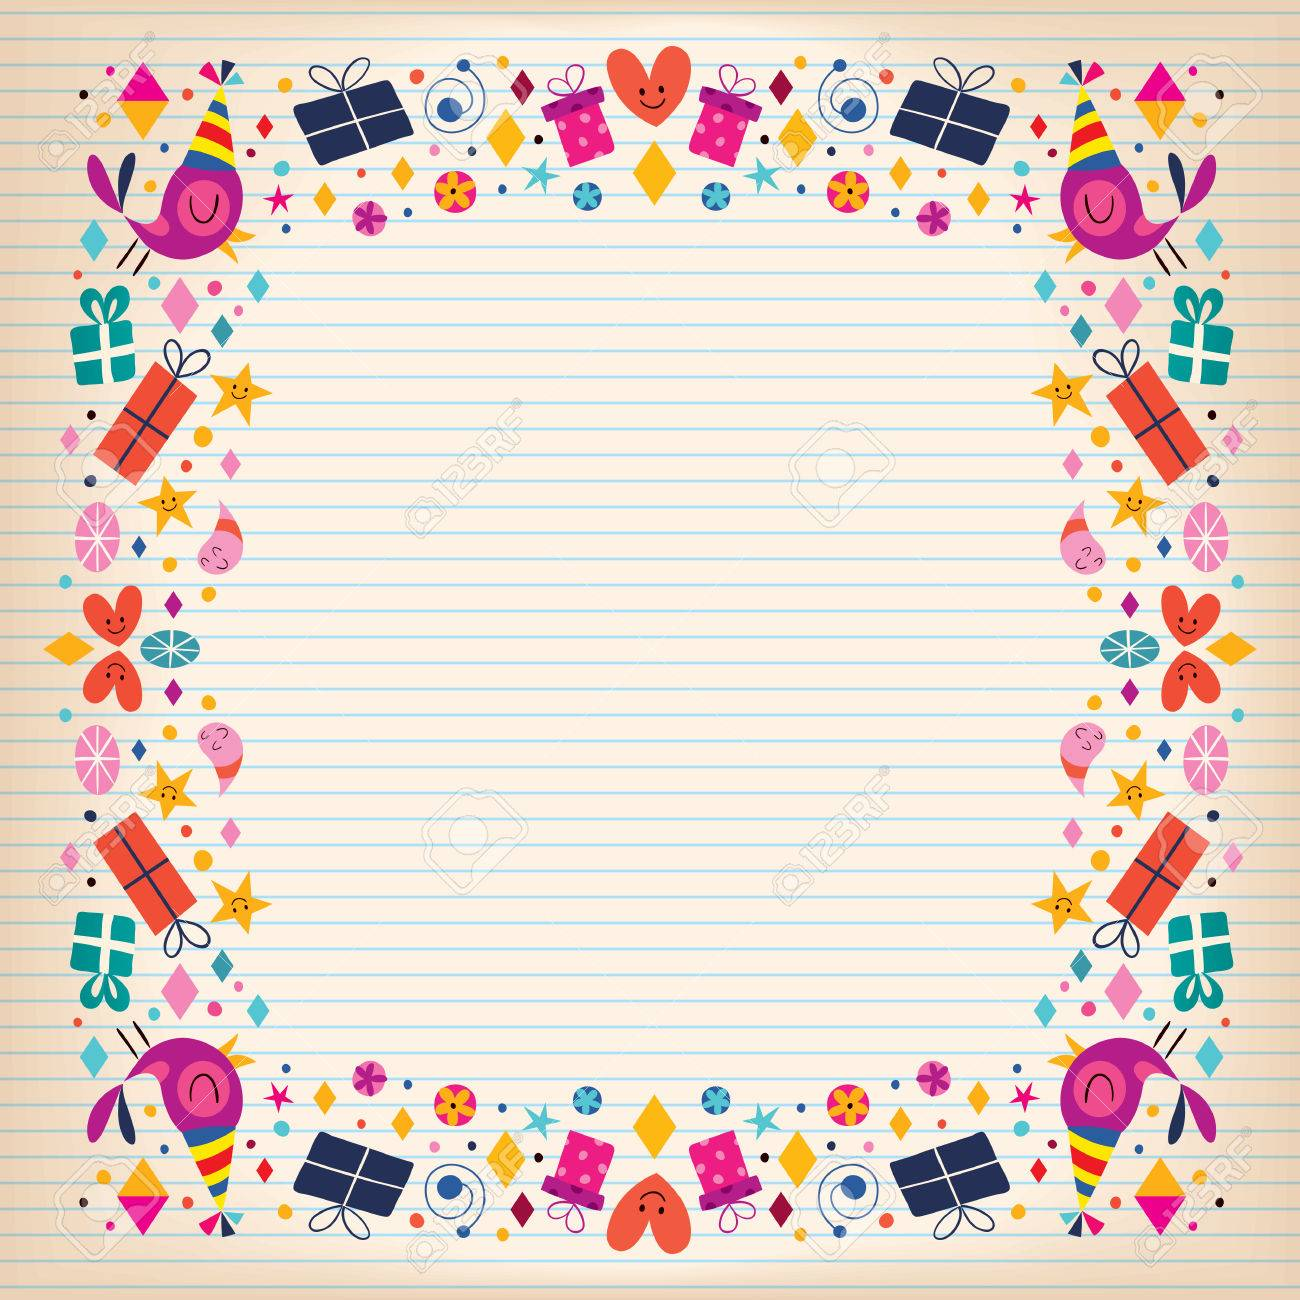 birthday border paper ; 32044777-happy-birthday-border-lined-paper-card-with-space-for-text-Stock-Photo